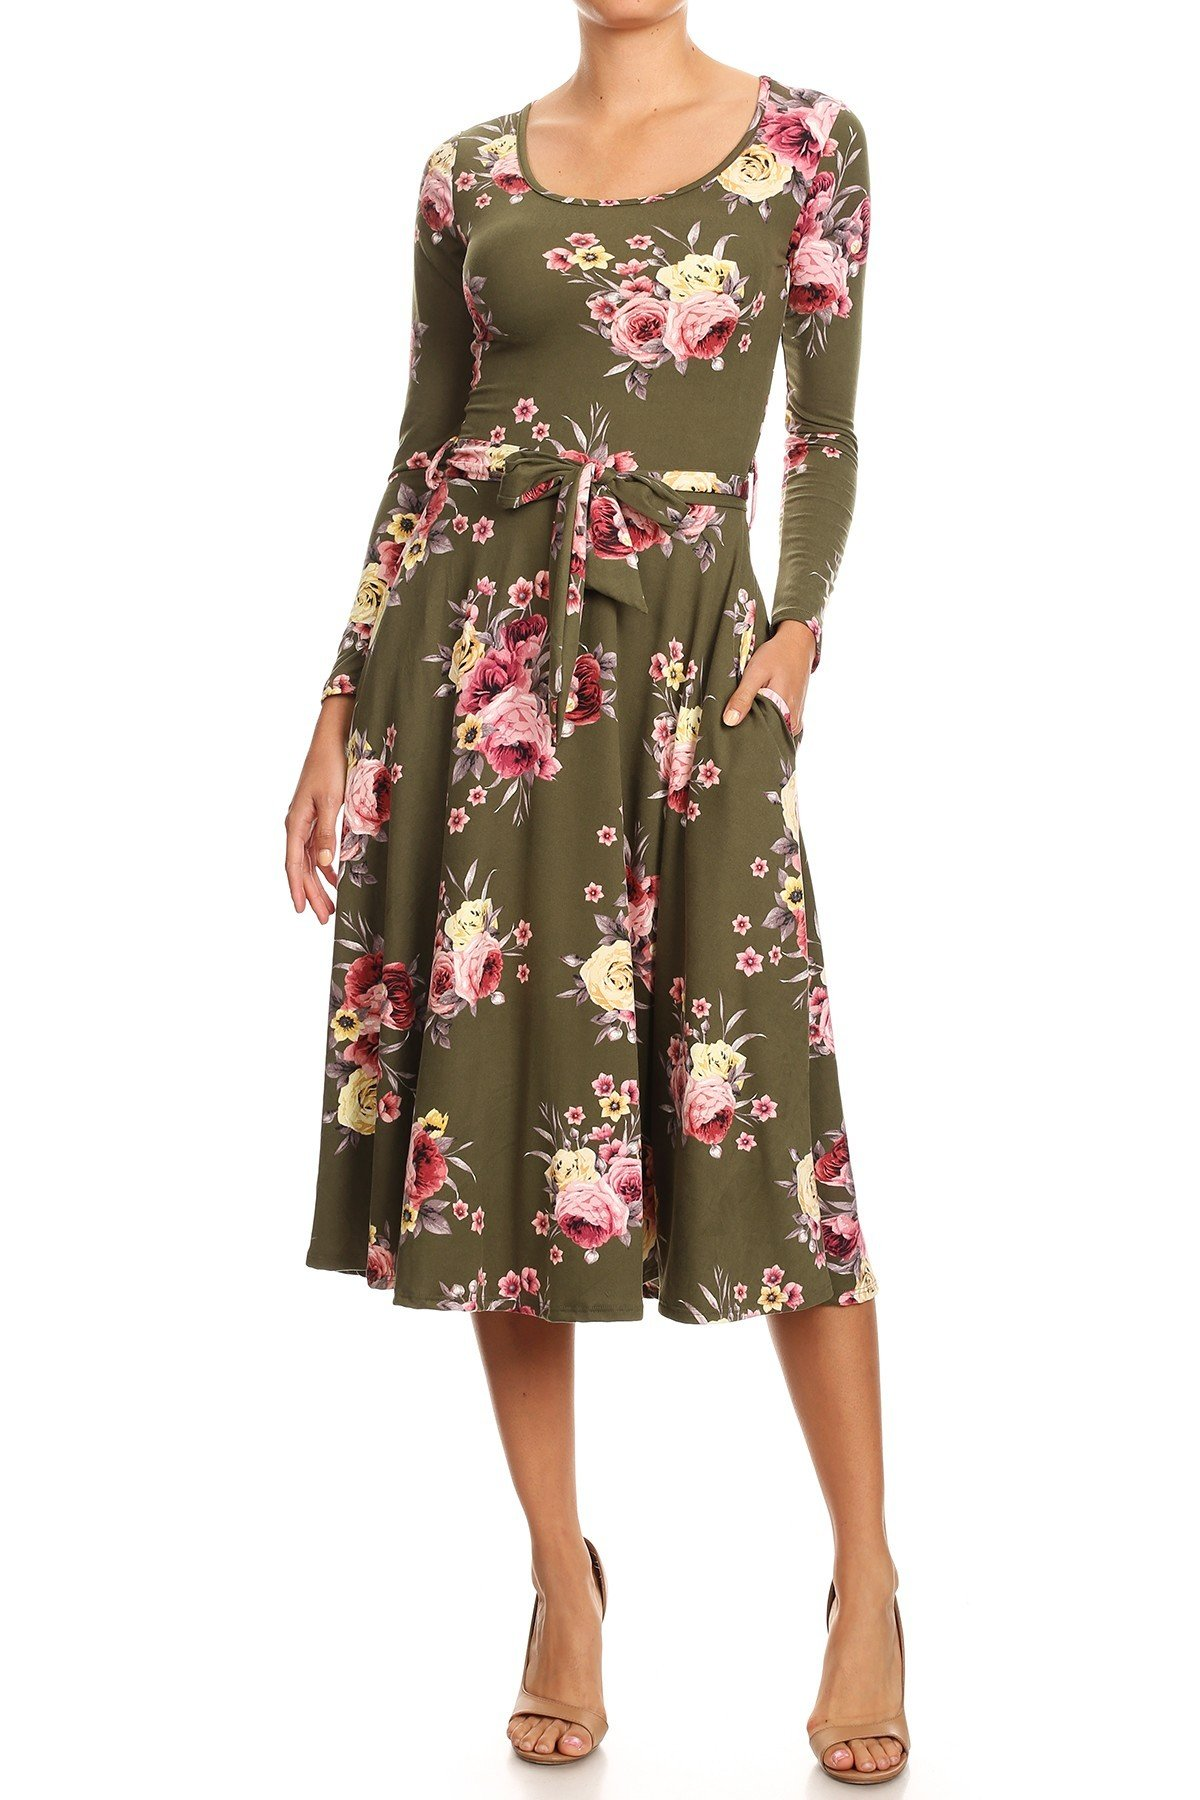 Floral Swing Dress UPDR644-FLORALSWING